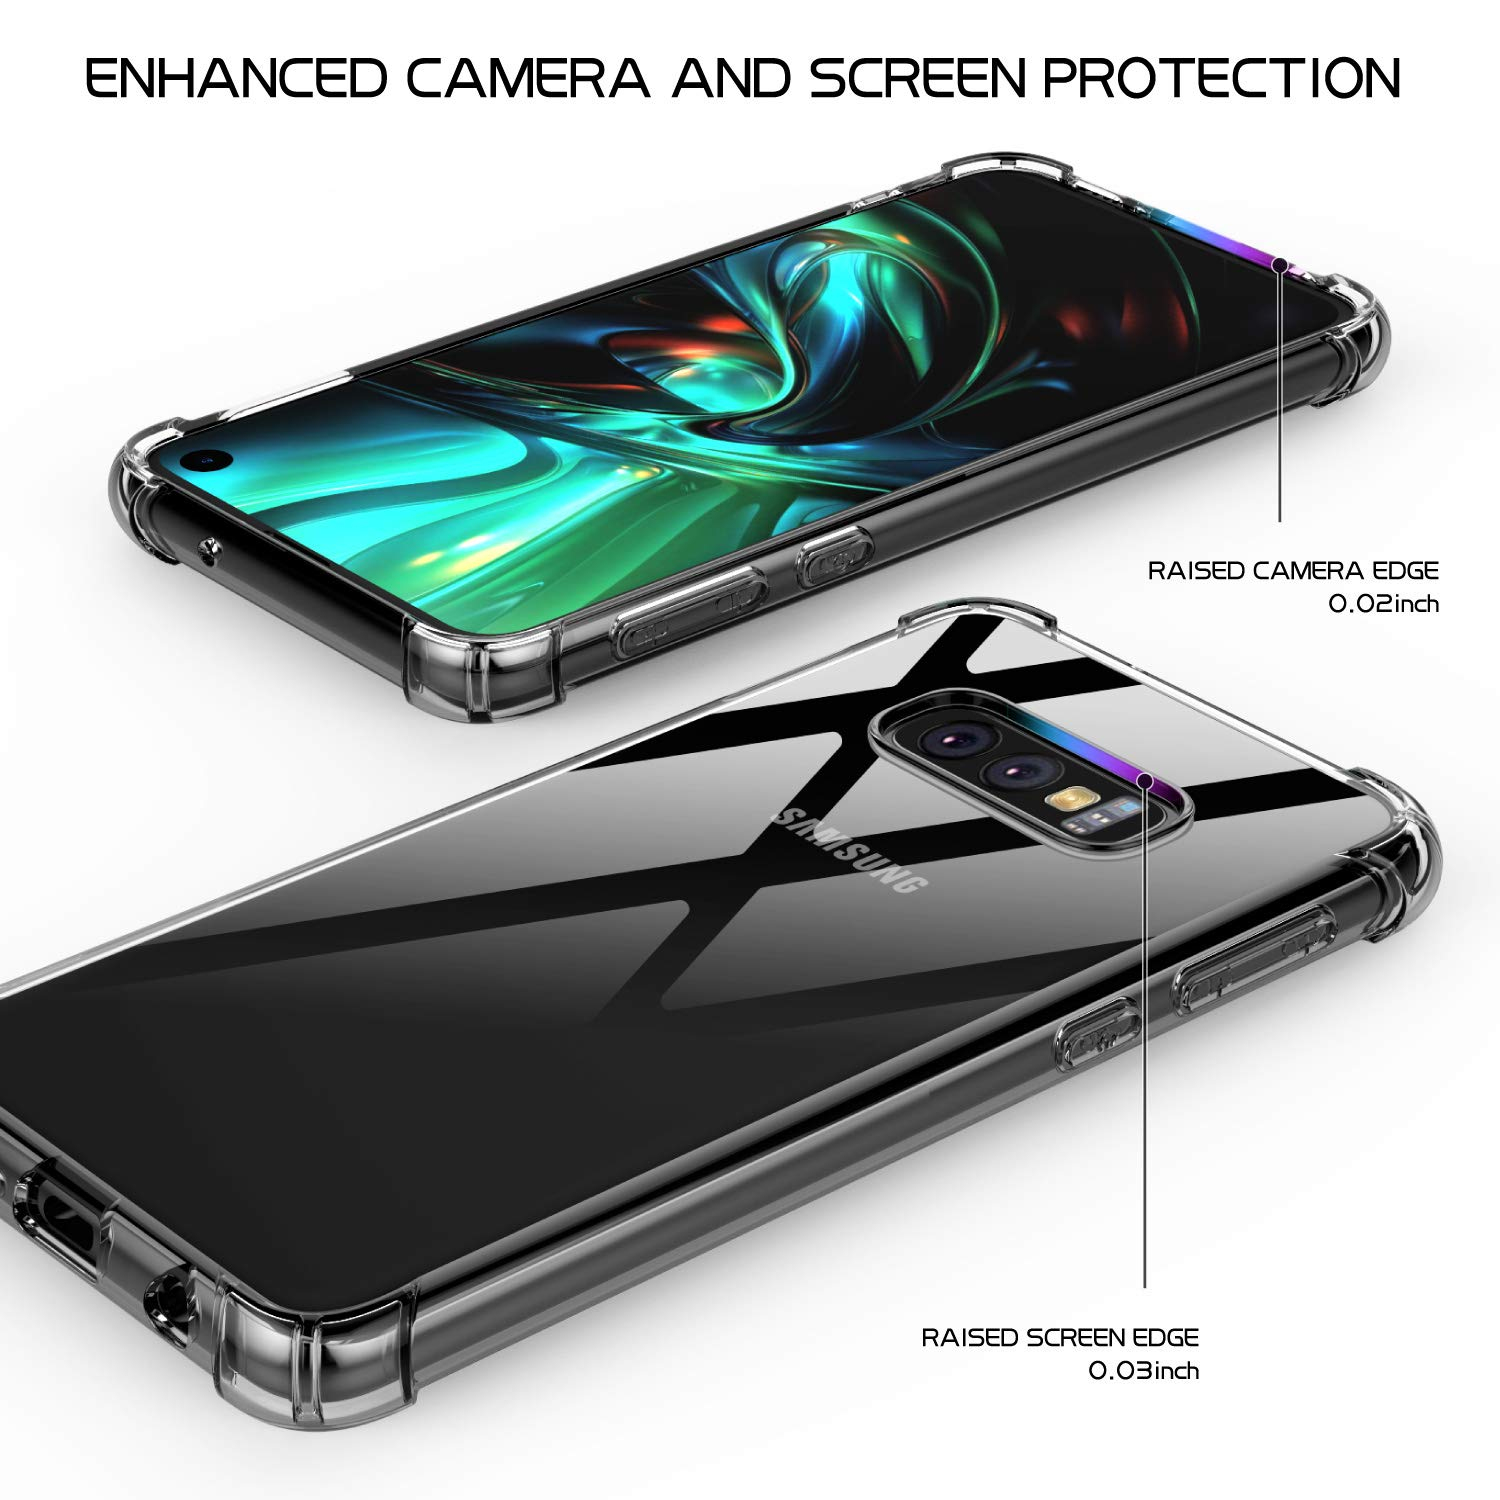 Samsung Galaxy S10E Case, SPIDERCASE Clear Ultra Thin Slim Fit Soft TPU Protective Cover, Shock-Absorption Cover, Anti-Scratch, HD Clear, Compatible for Samsung Galaxy S10E 5.8inch 2019 Released